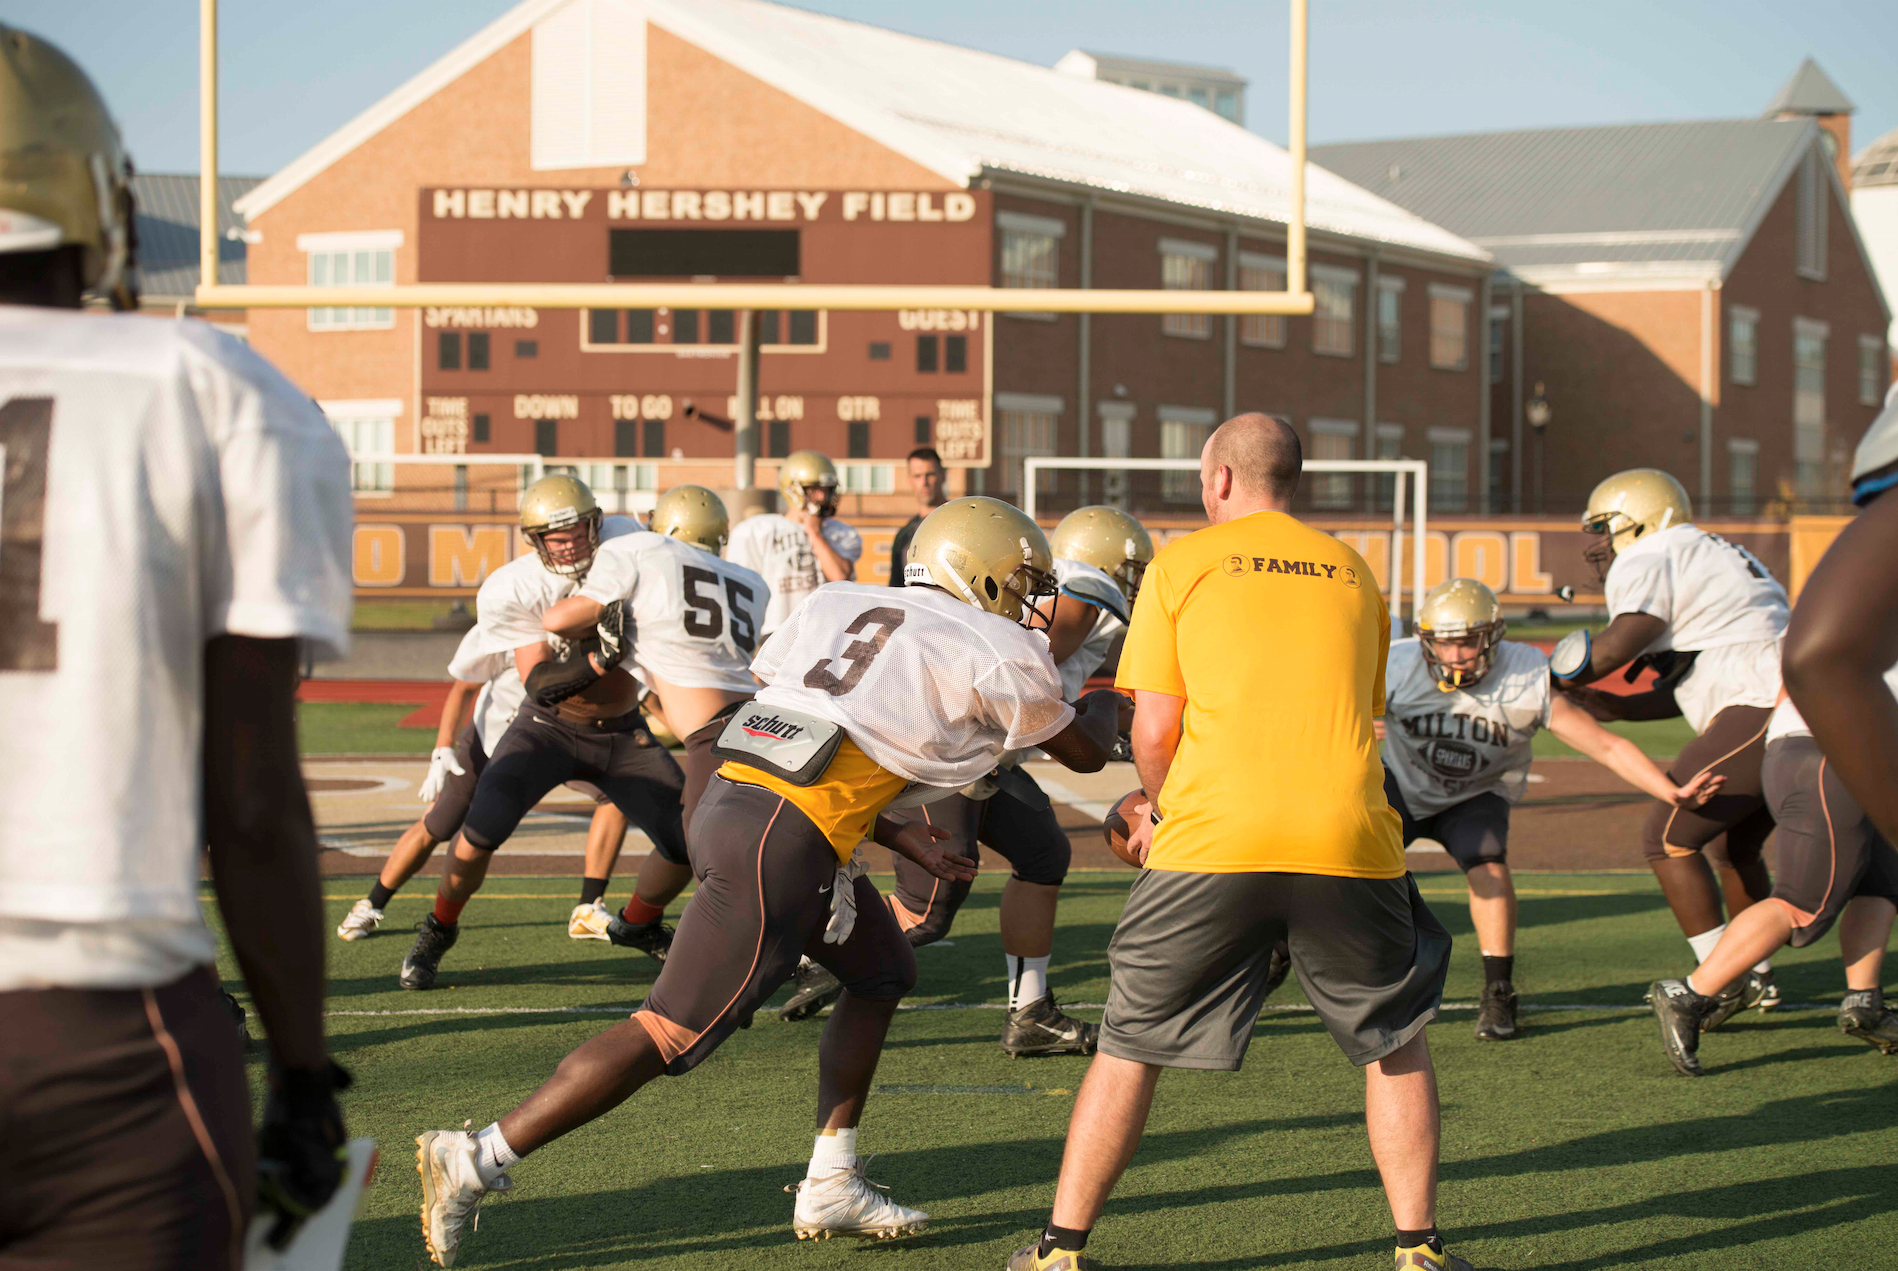 At MHS, the football team act as family on and off the field.